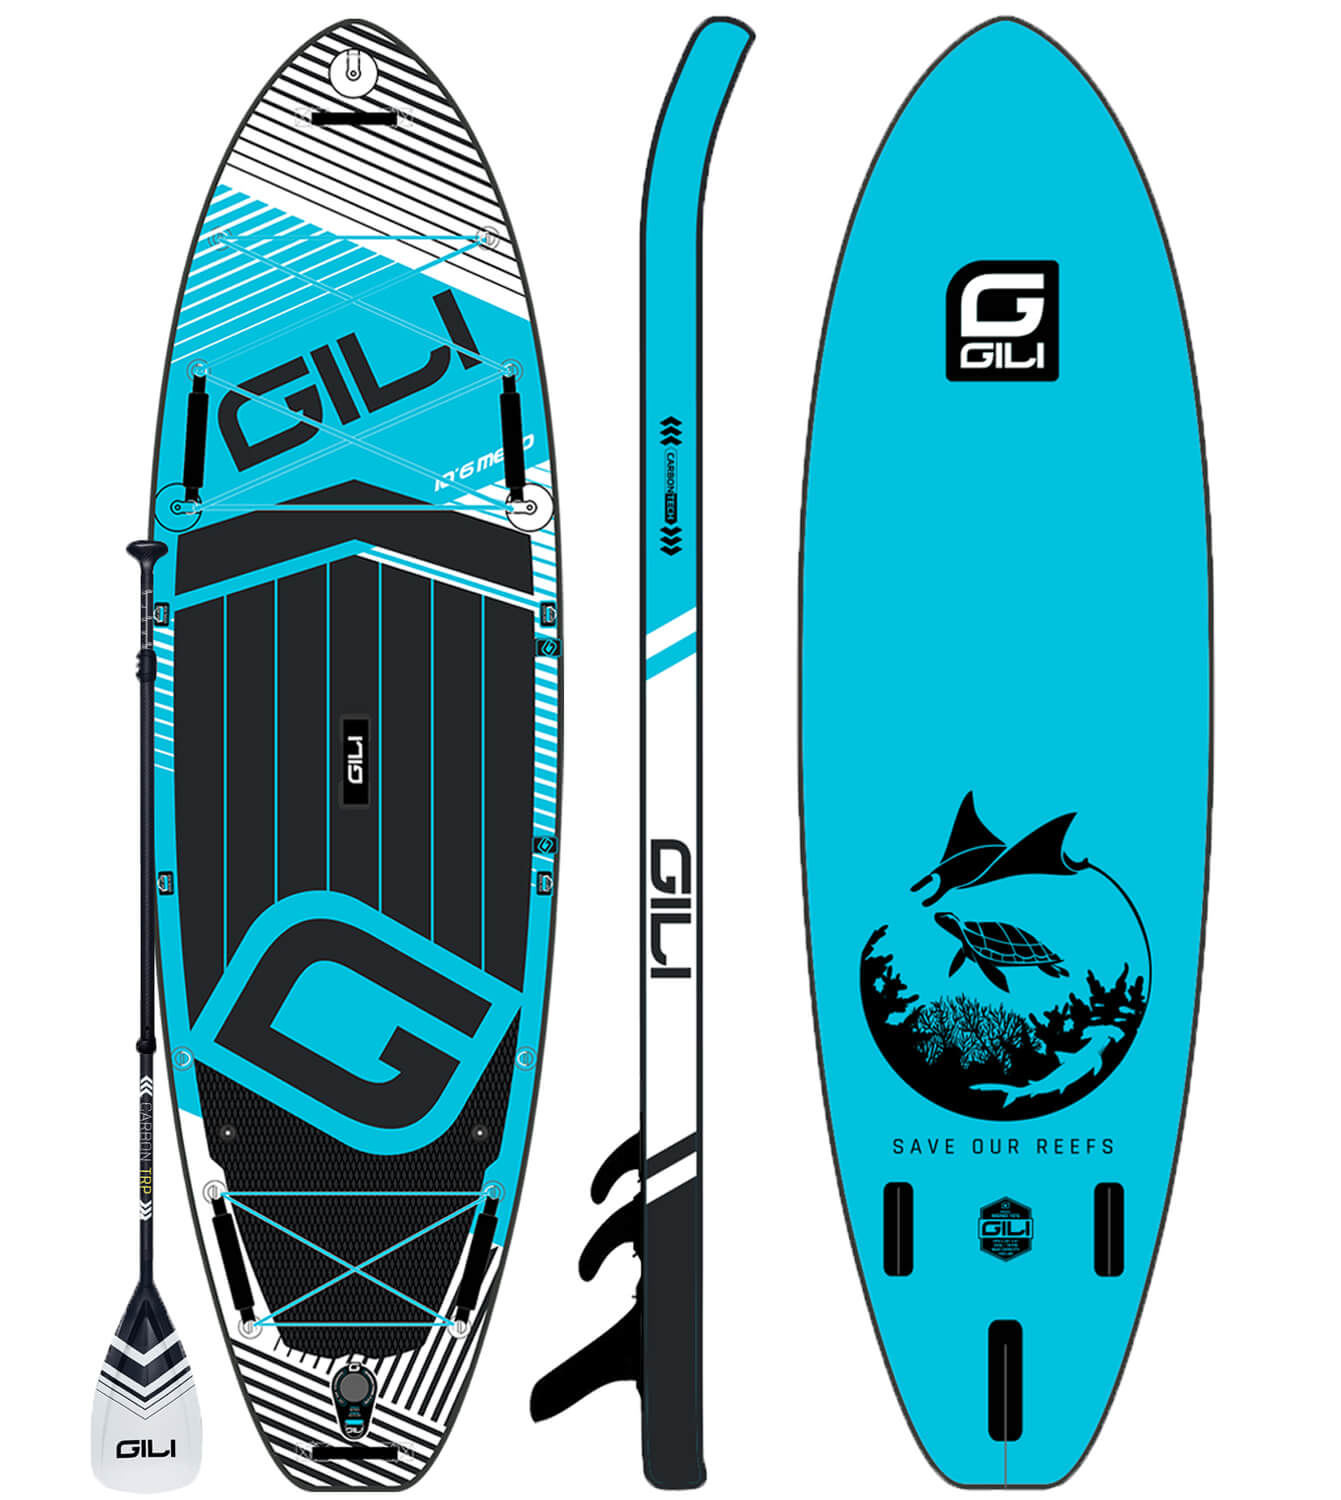 GILI Meno Best High End SUP package